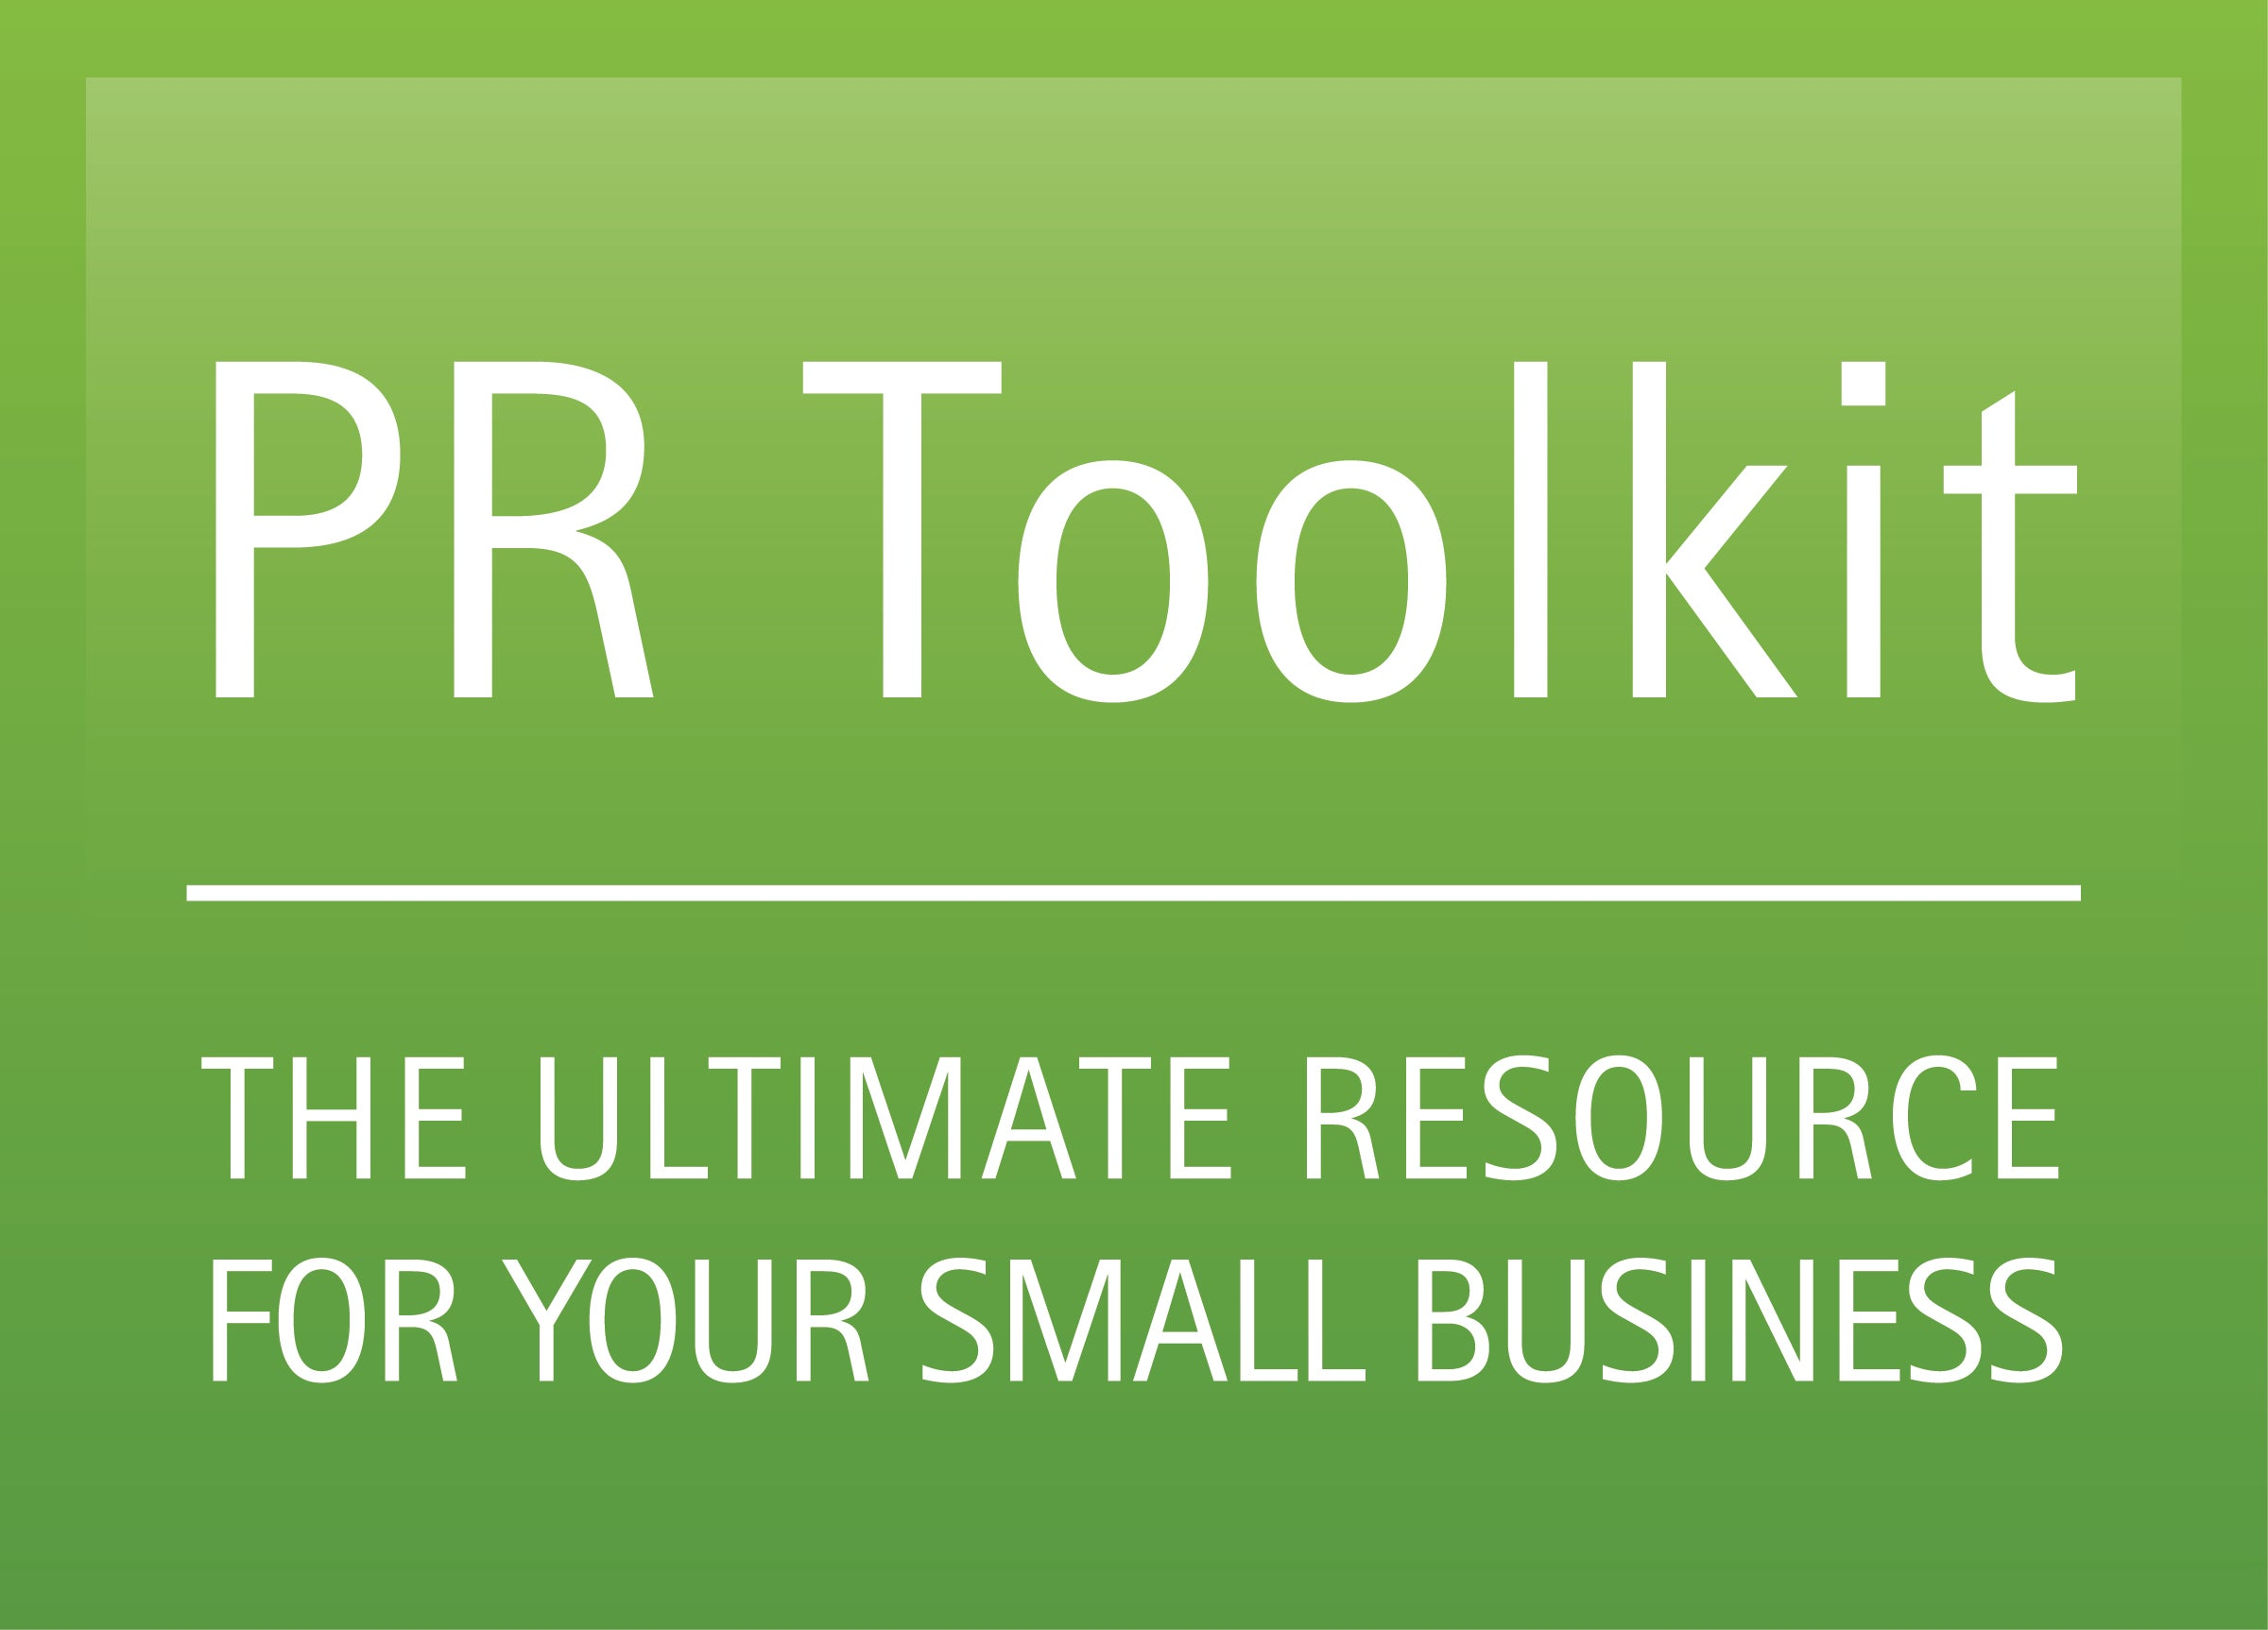 PR Newswire's Small Business PR Toolkit